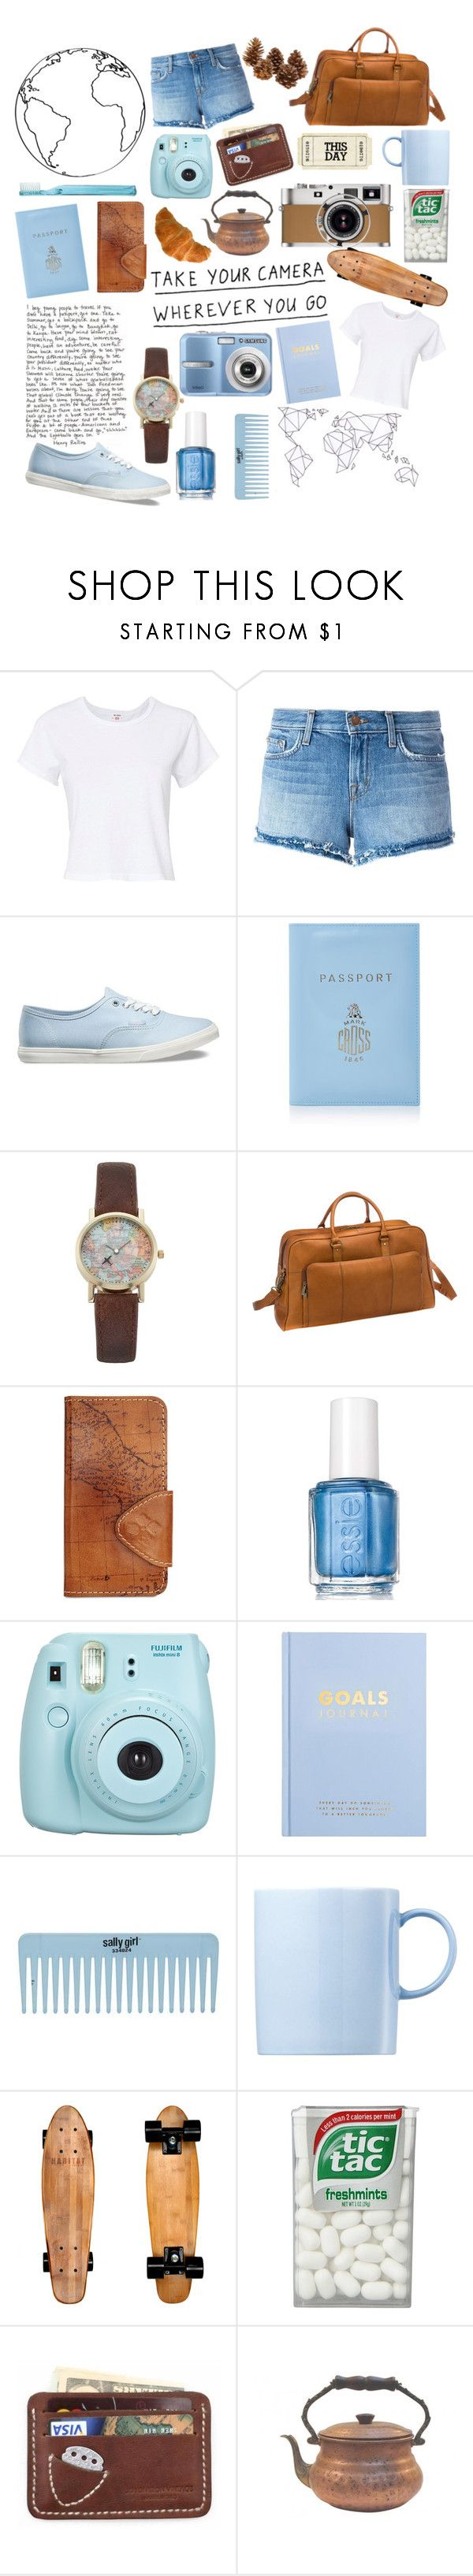 """Take your camera wherever you go, you never know what you might see"" by rather-be-surfing ❤ liked on Polyvore featuring RE/DONE, J Brand, Vans, Mark Cross, Vivani, Le Donne, Patricia Nash, Essie, Fujifilm and kikki.K"